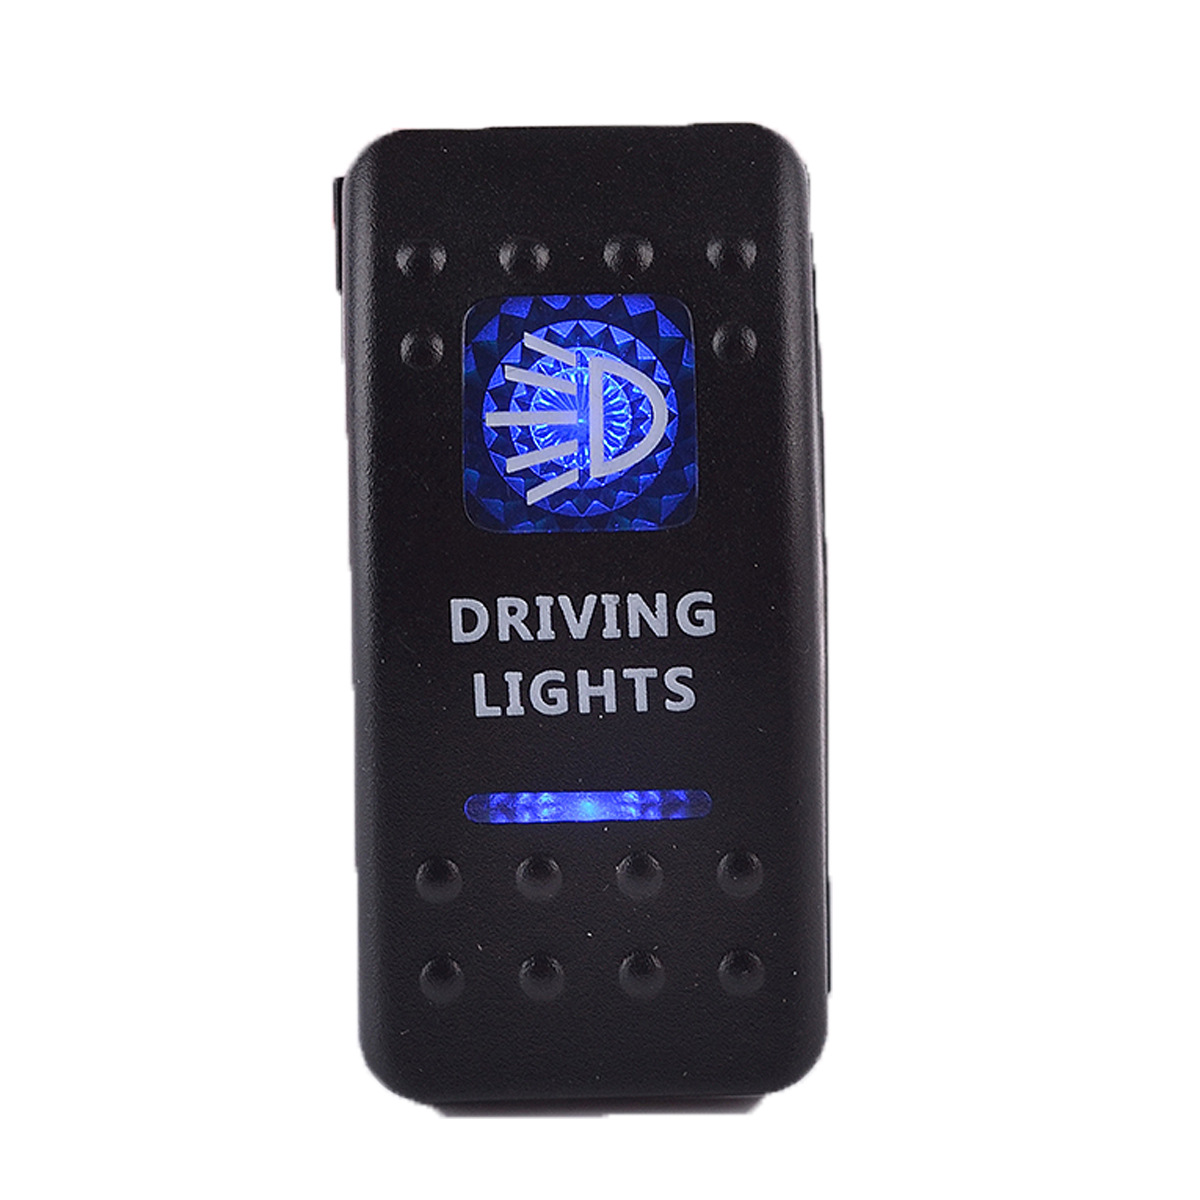 He Xiang Automobile Modified Switch/Boat-shaped Switch/with LED Indicator Light Wholesale Driving Light